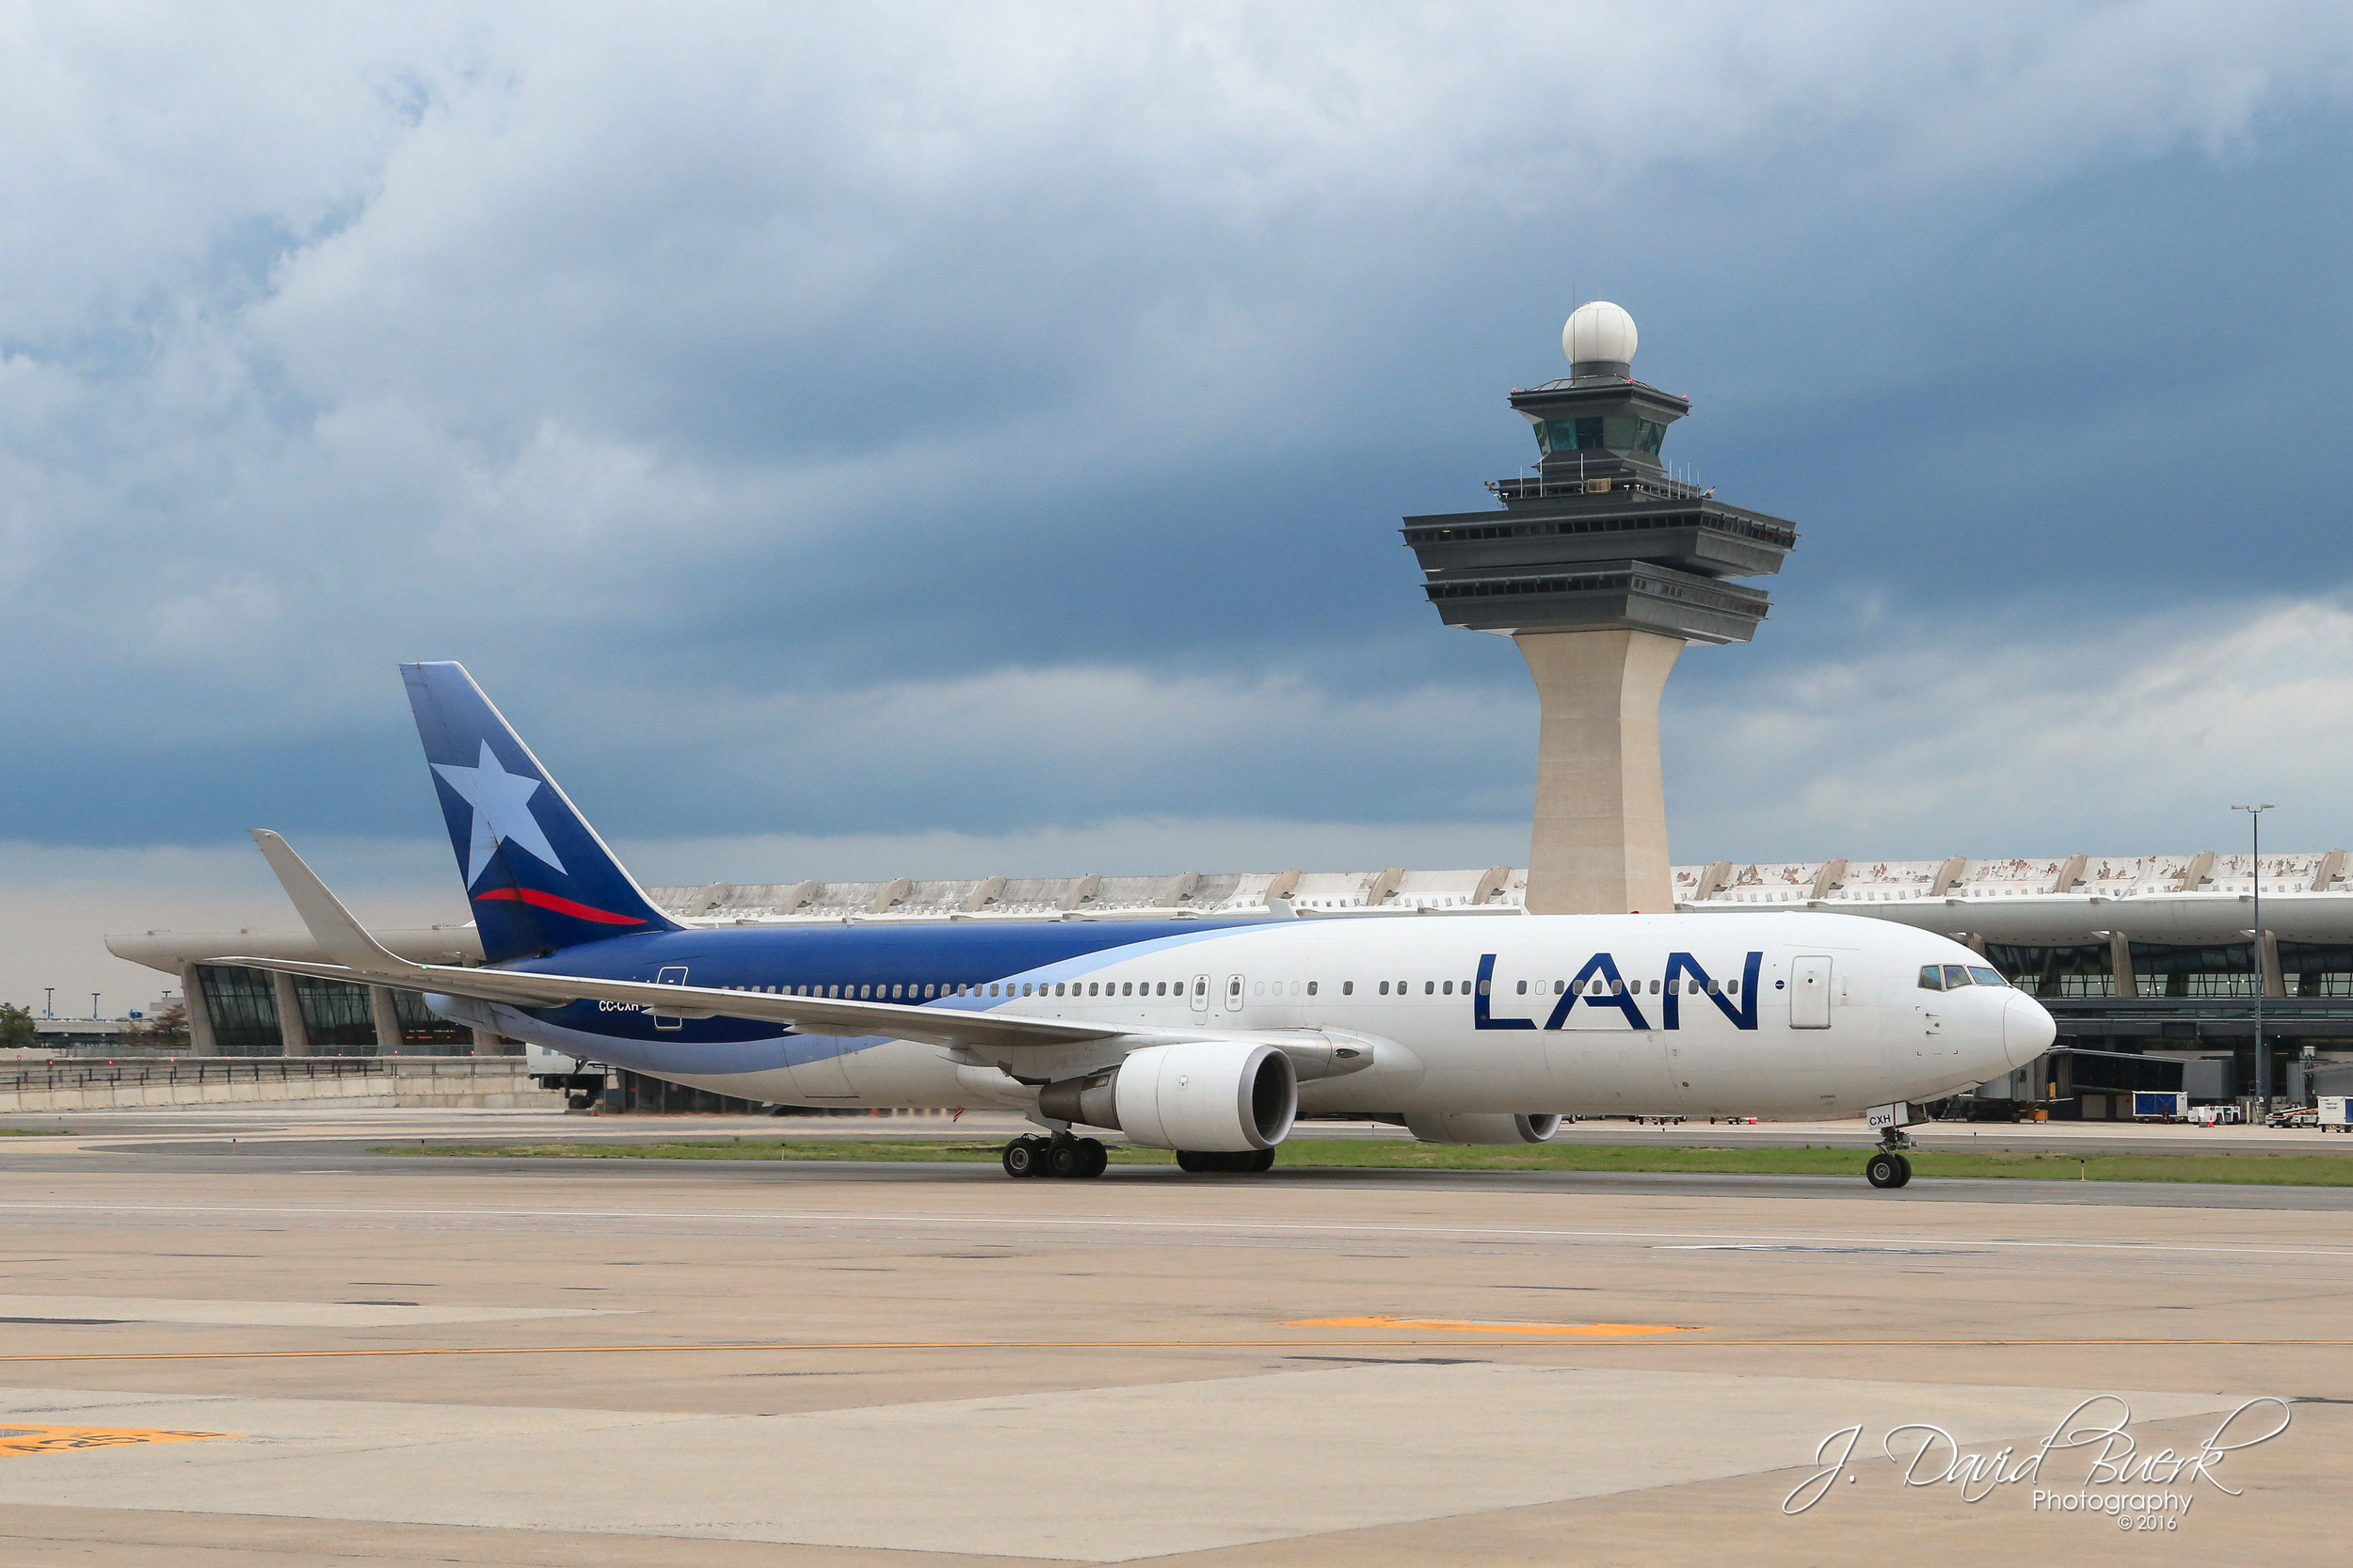 LATAM Airlines begins inaugural service between Lima, Peru and Washington, DC on May 2nd, 2016.  LATAM is the result of LAN Airlines and TAM Airlines merging at the same time this inaugural flight took place; the LAN Airlines livery seen above has been discontinued.